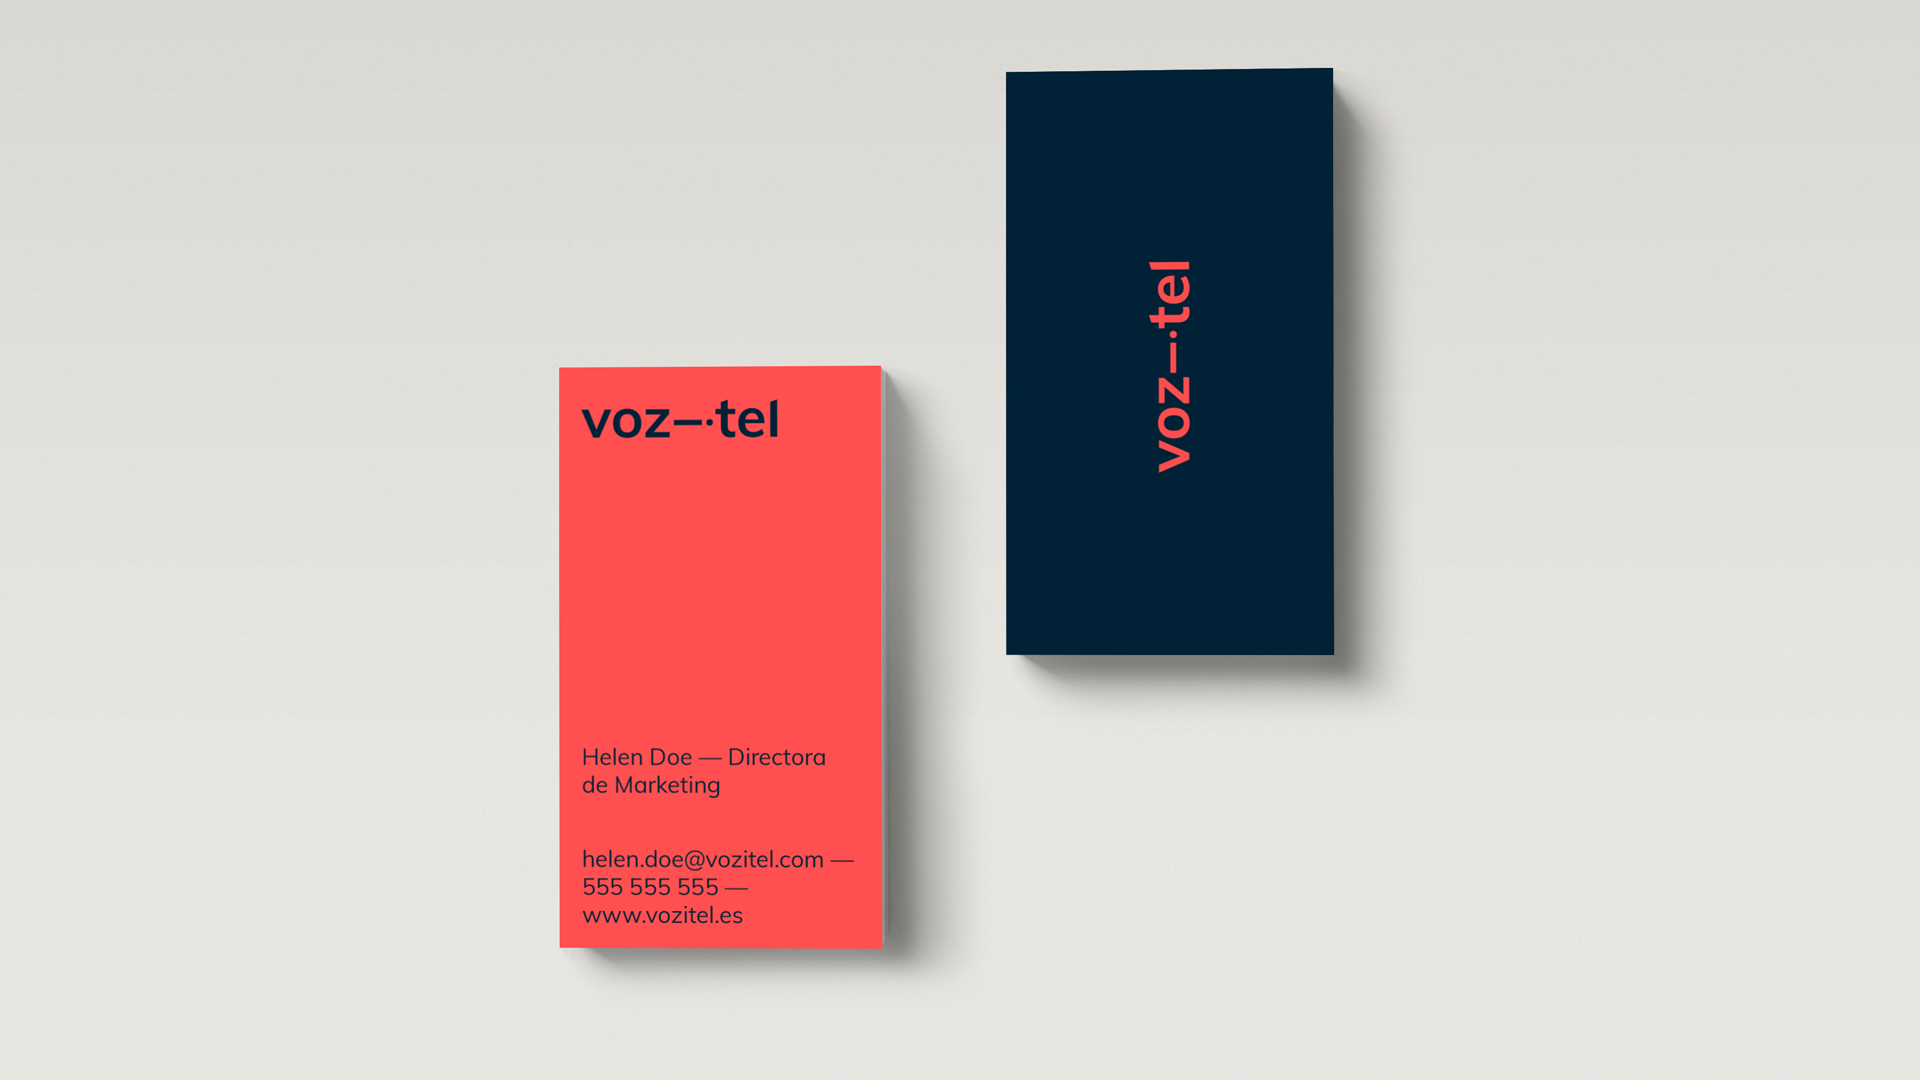 Corporate identity design applied to the digital environment, Vozitel, 2020